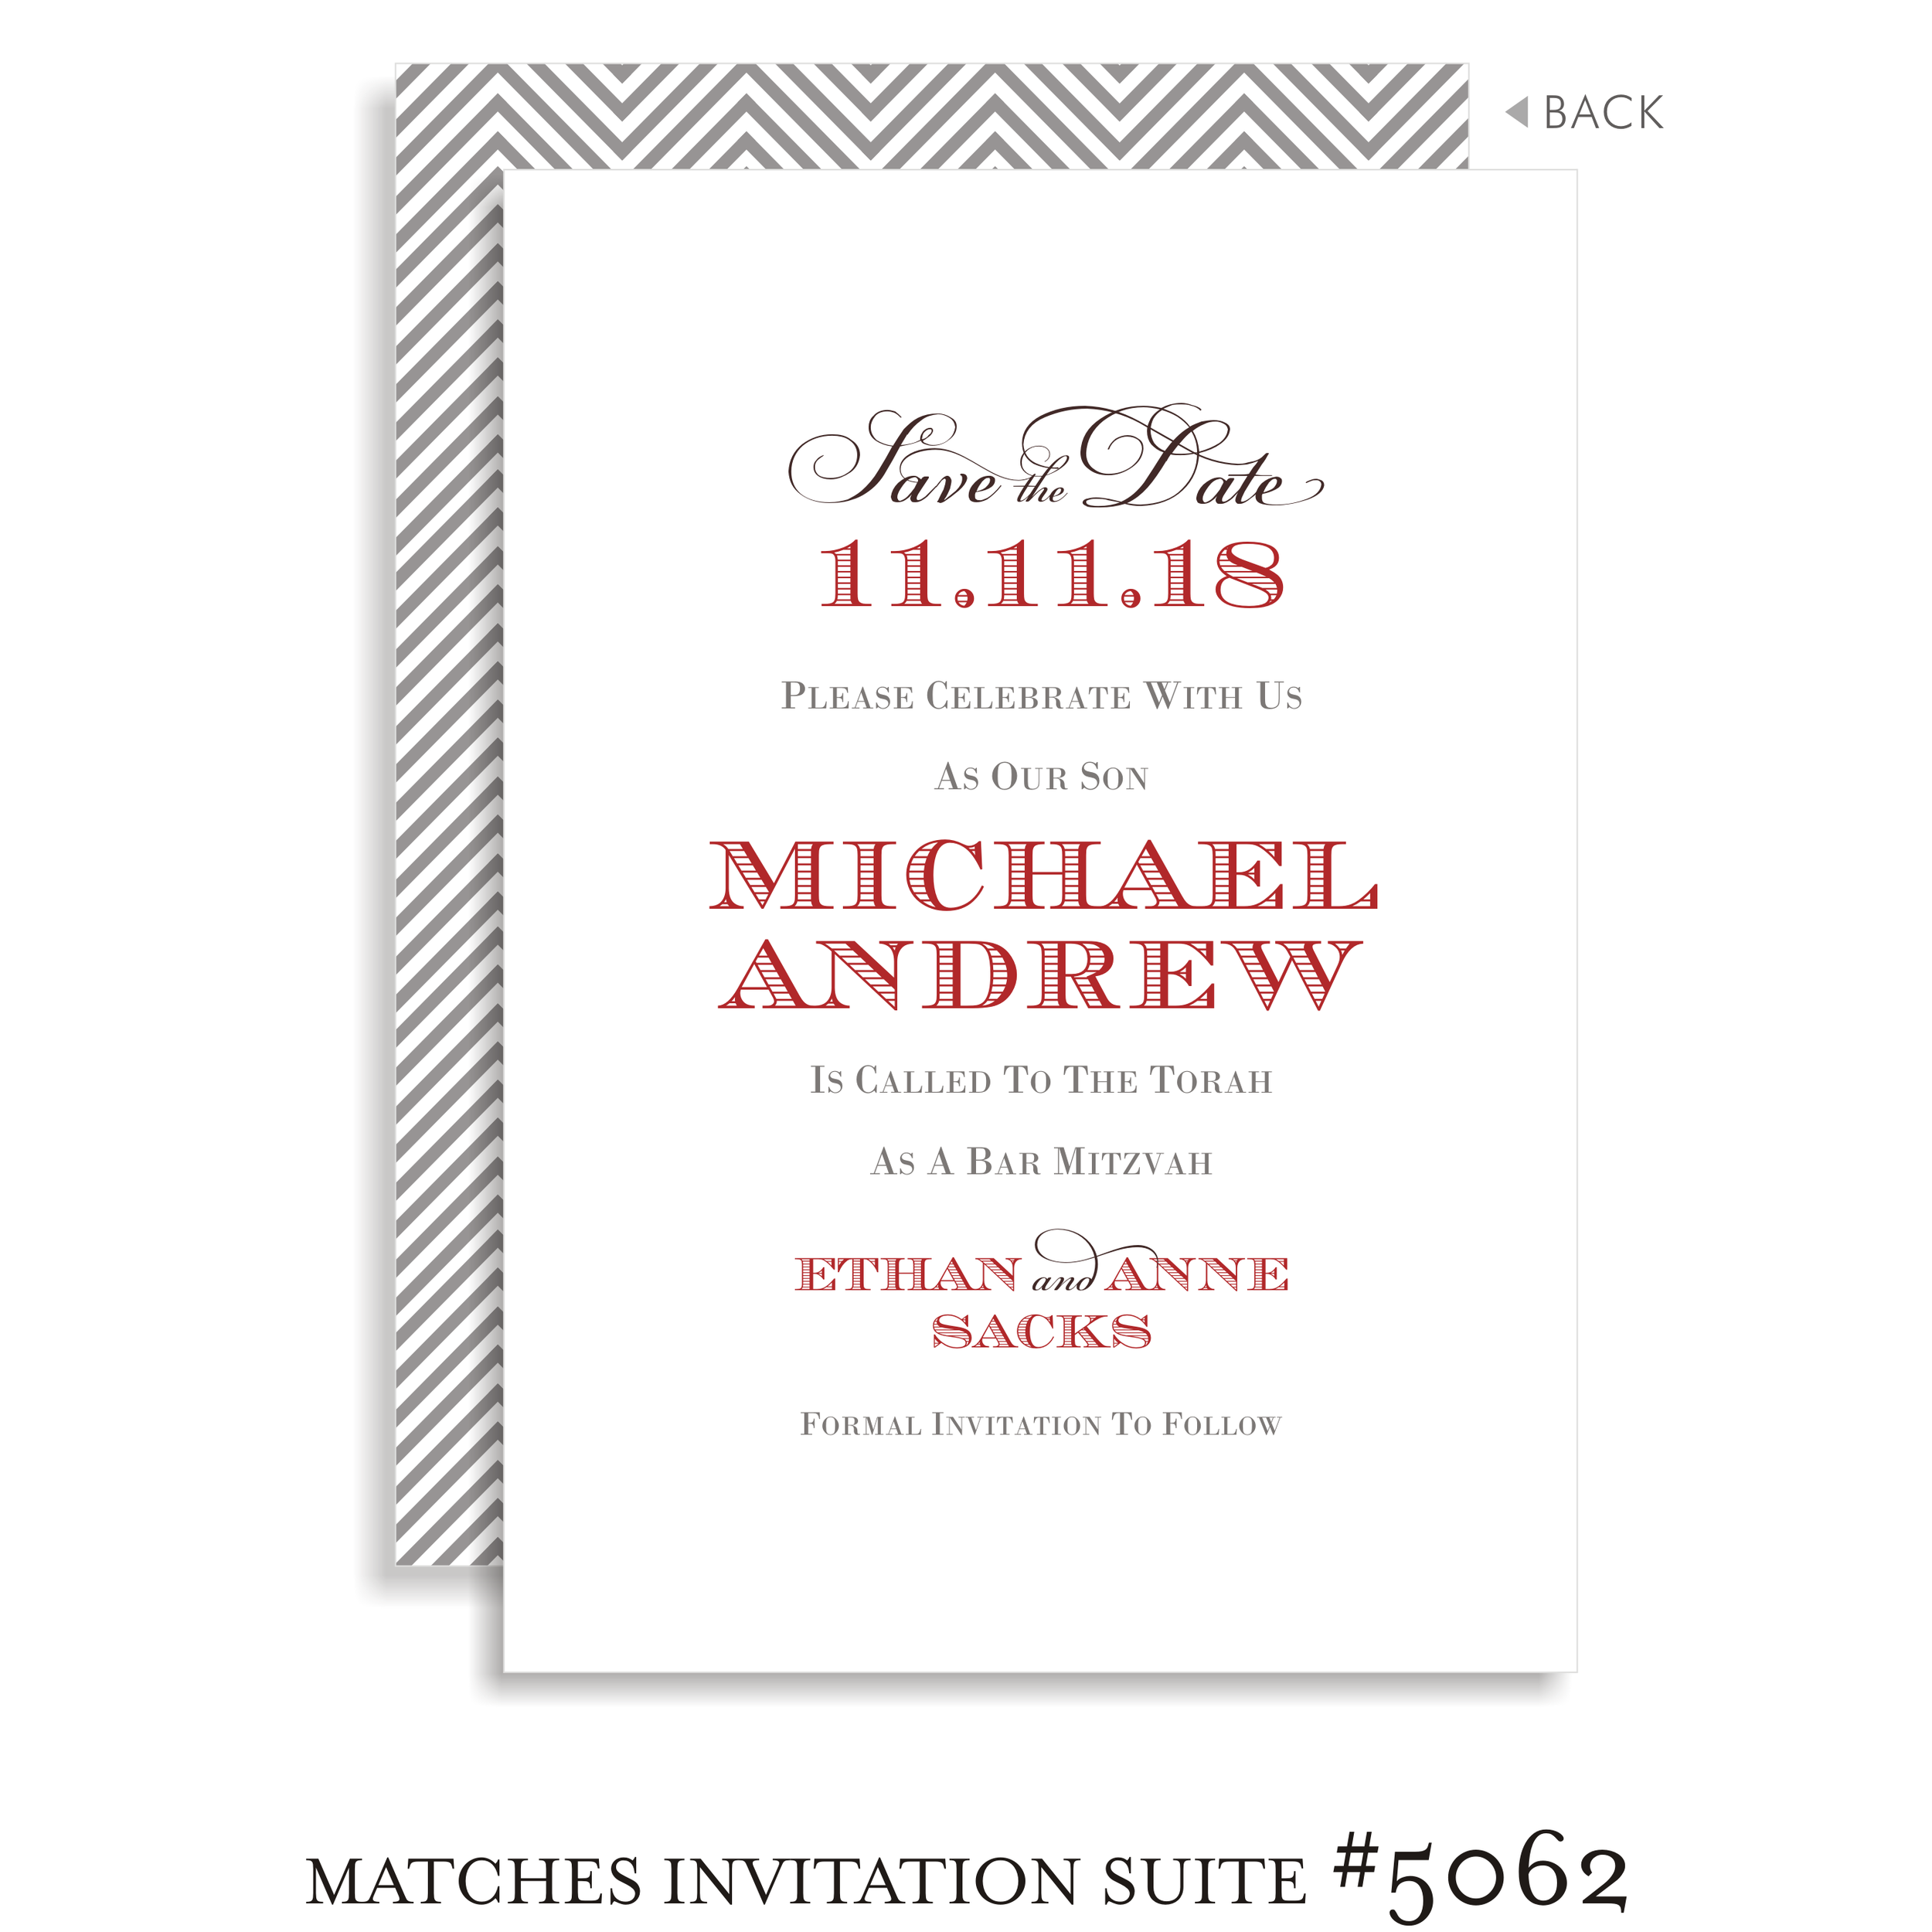 Save the Date Bar Mitzvah Suite 5062 - Michael Andrew